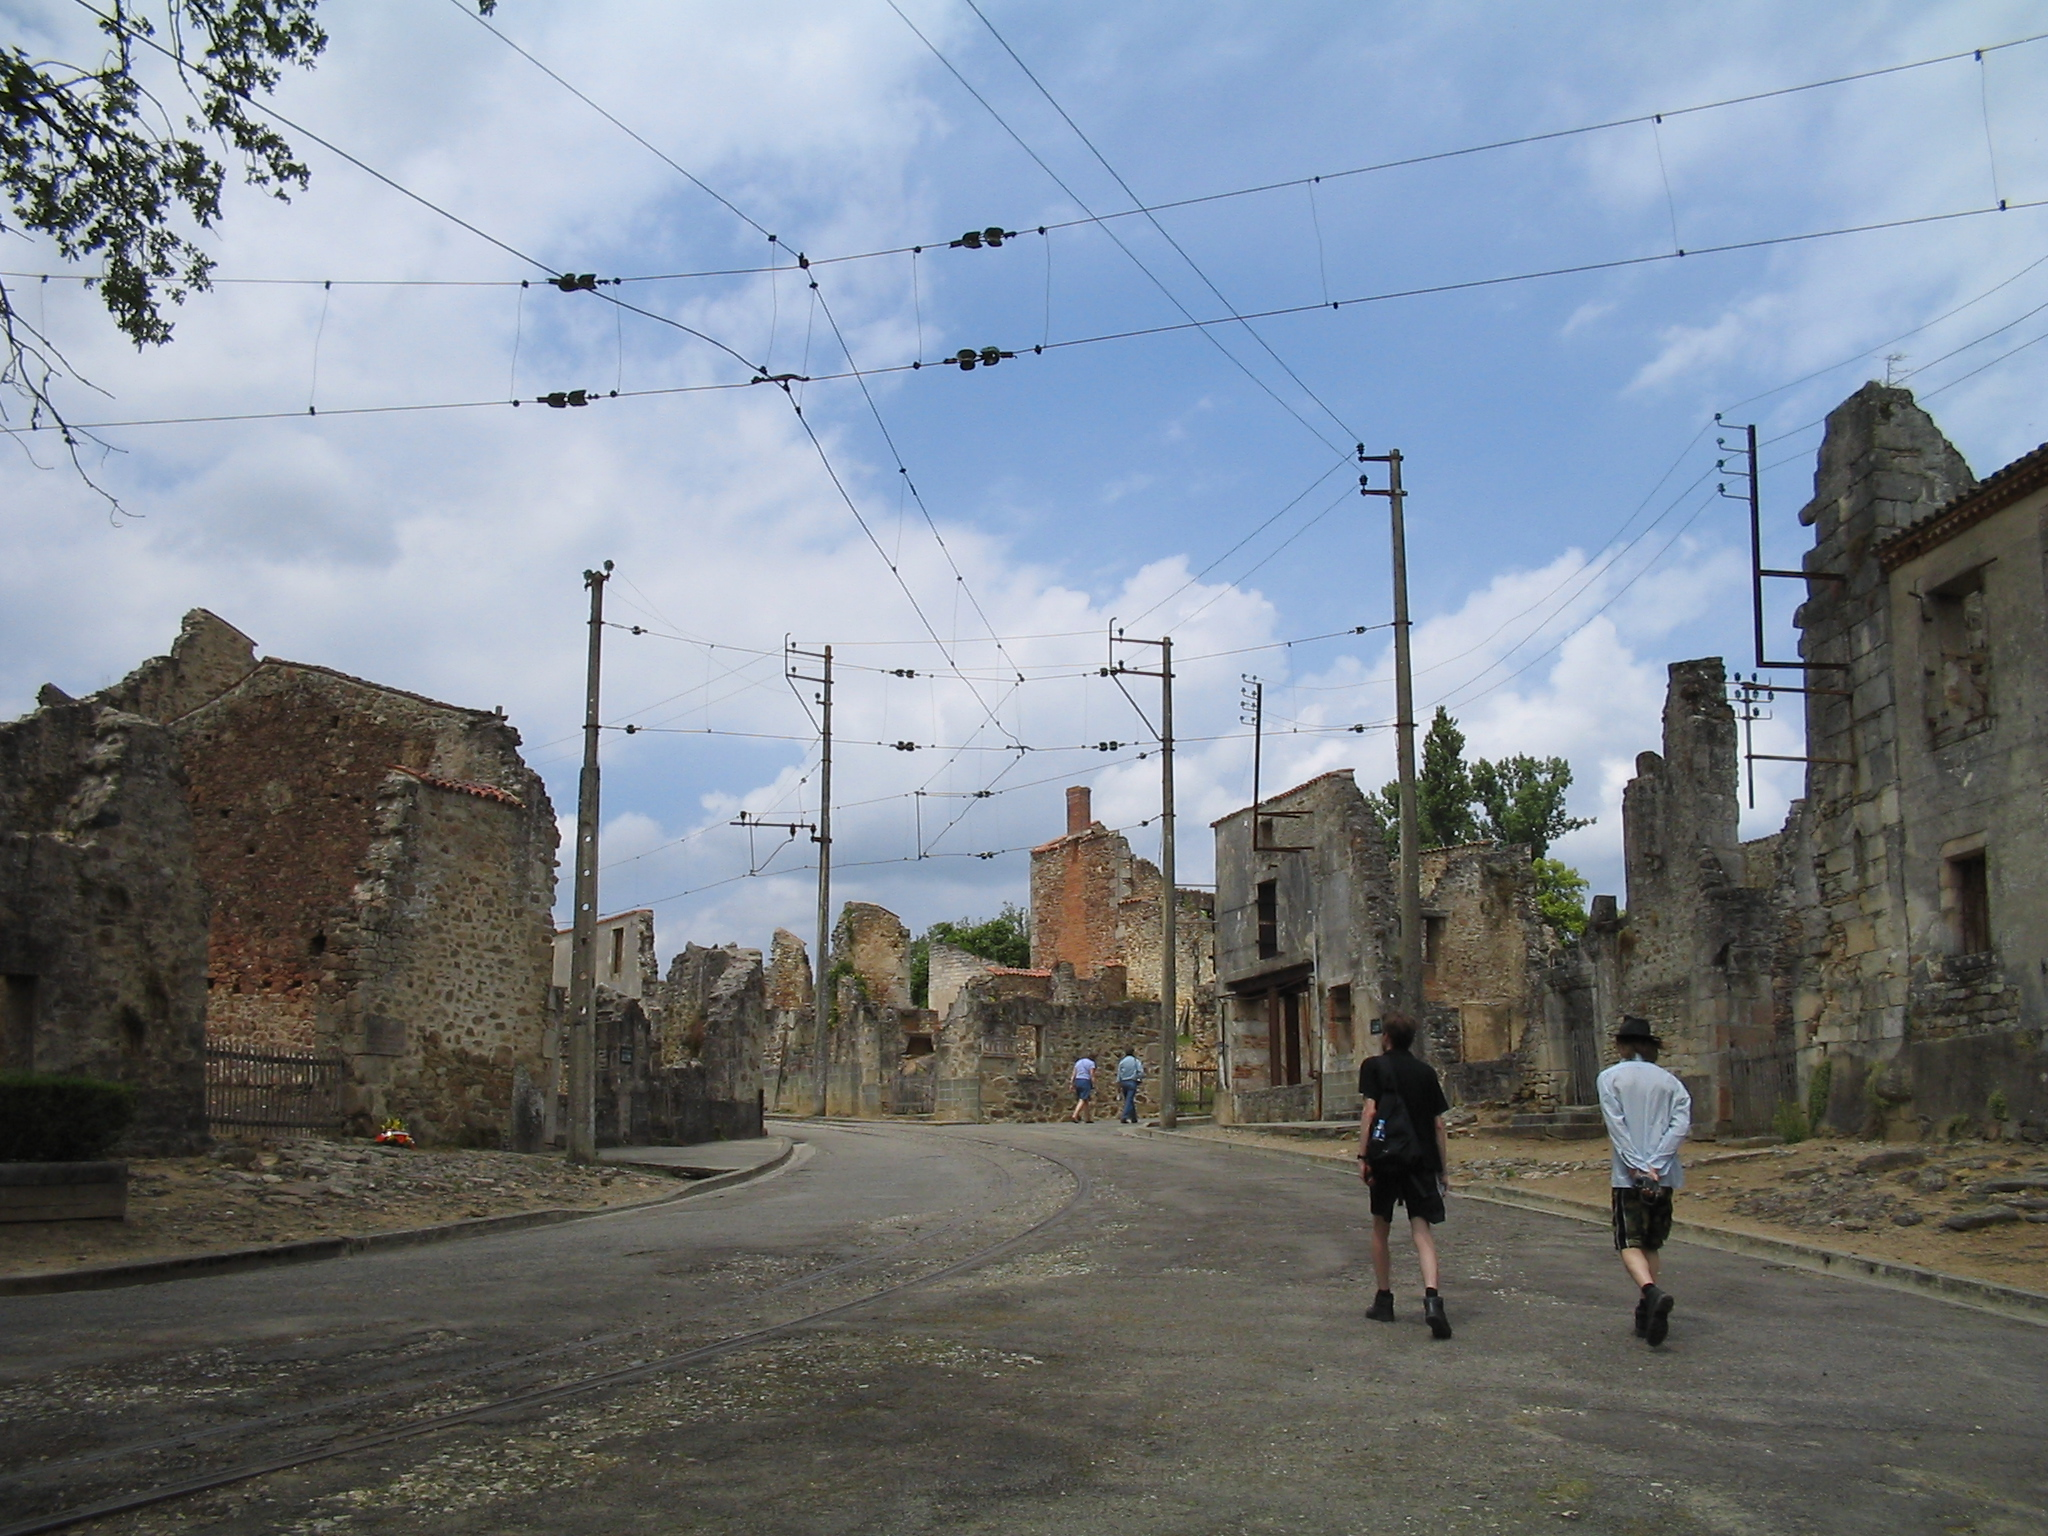 https://upload.wikimedia.org/wikipedia/commons/e/e9/Oradour-sur-Glane-Streets-1294.jpg